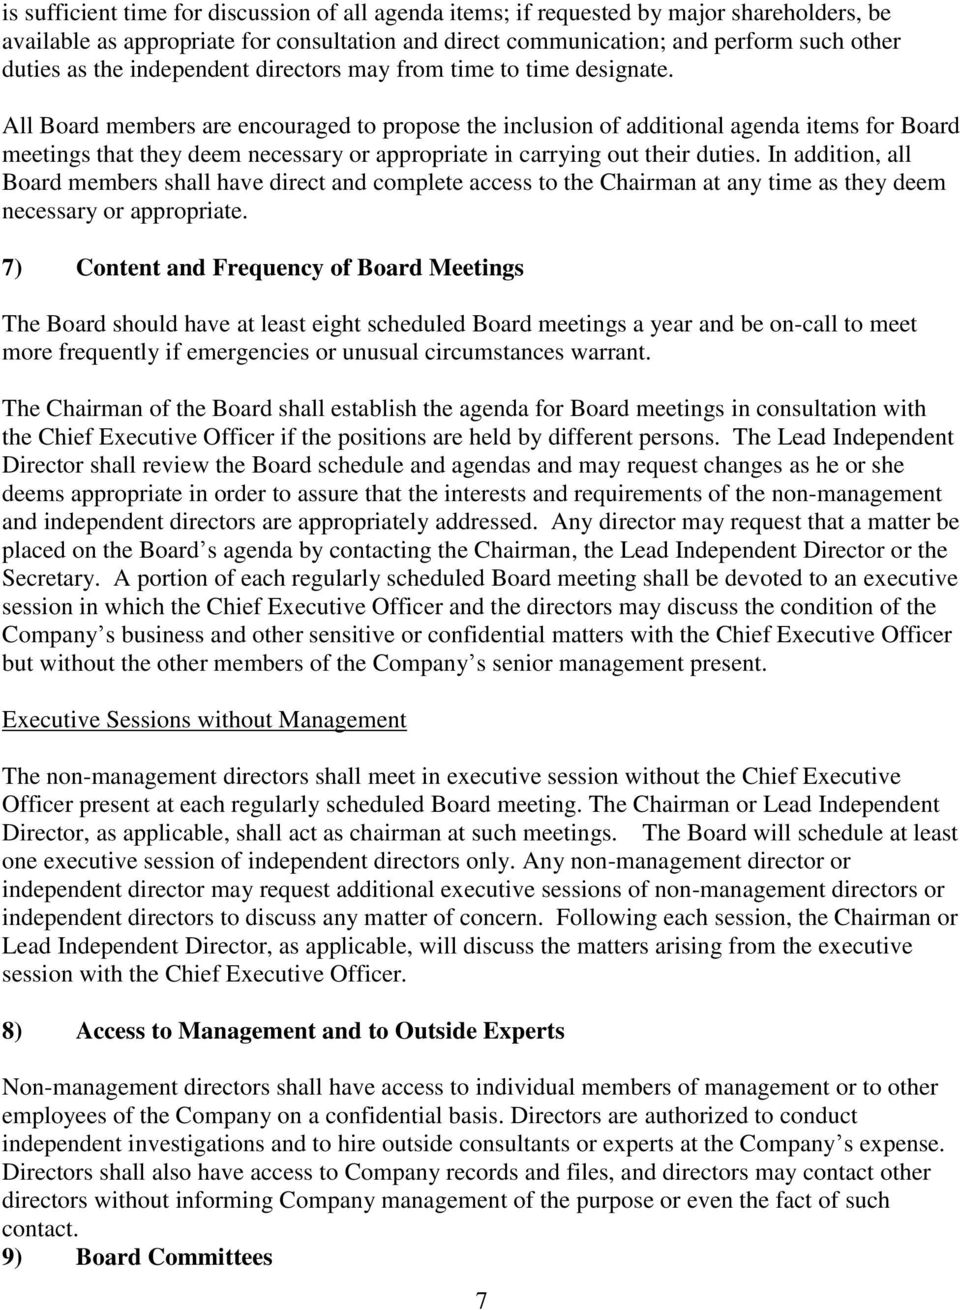 All Board members are encouraged to propose the inclusion of additional agenda items for Board meetings that they deem necessary or appropriate in carrying out their duties.